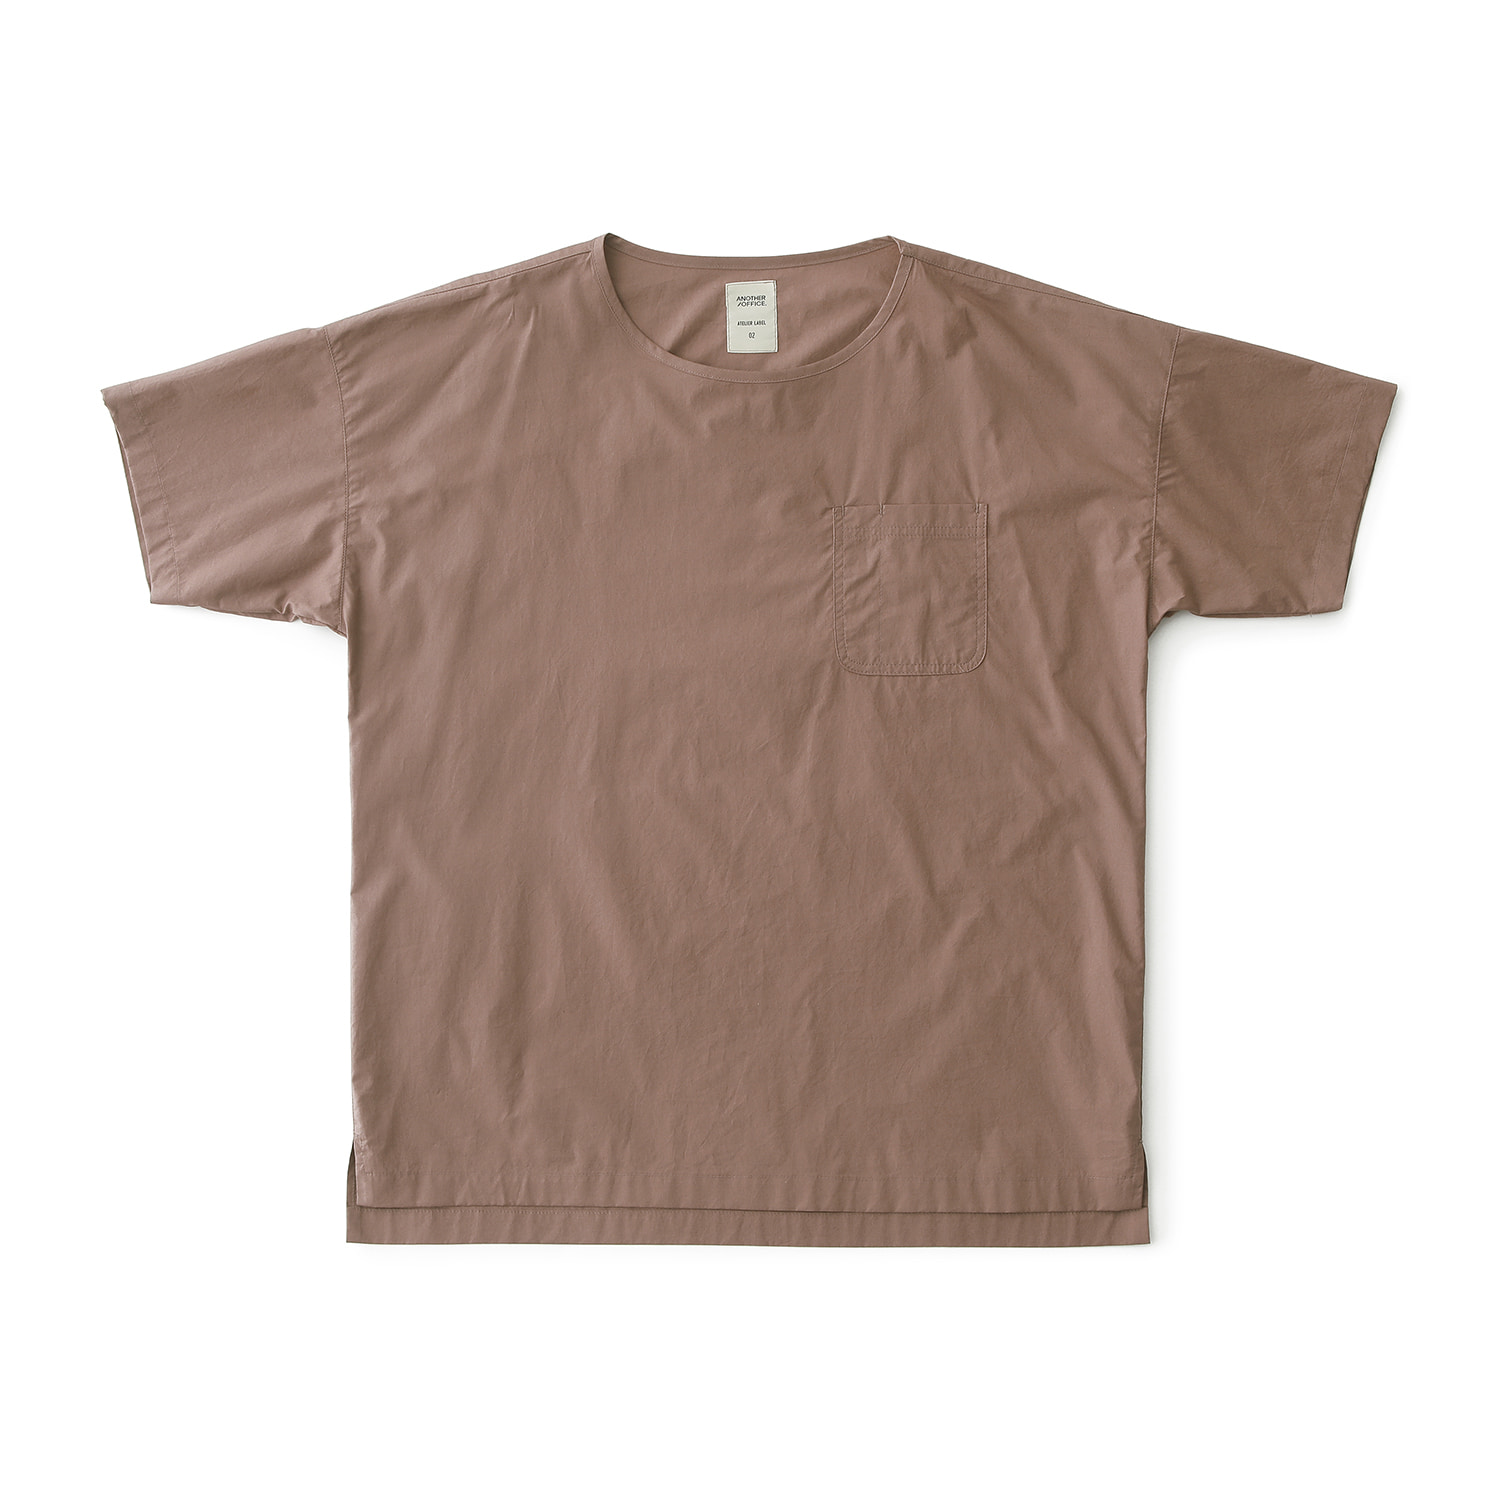 25% OFF_GARDENER SHIRT (Sienna)